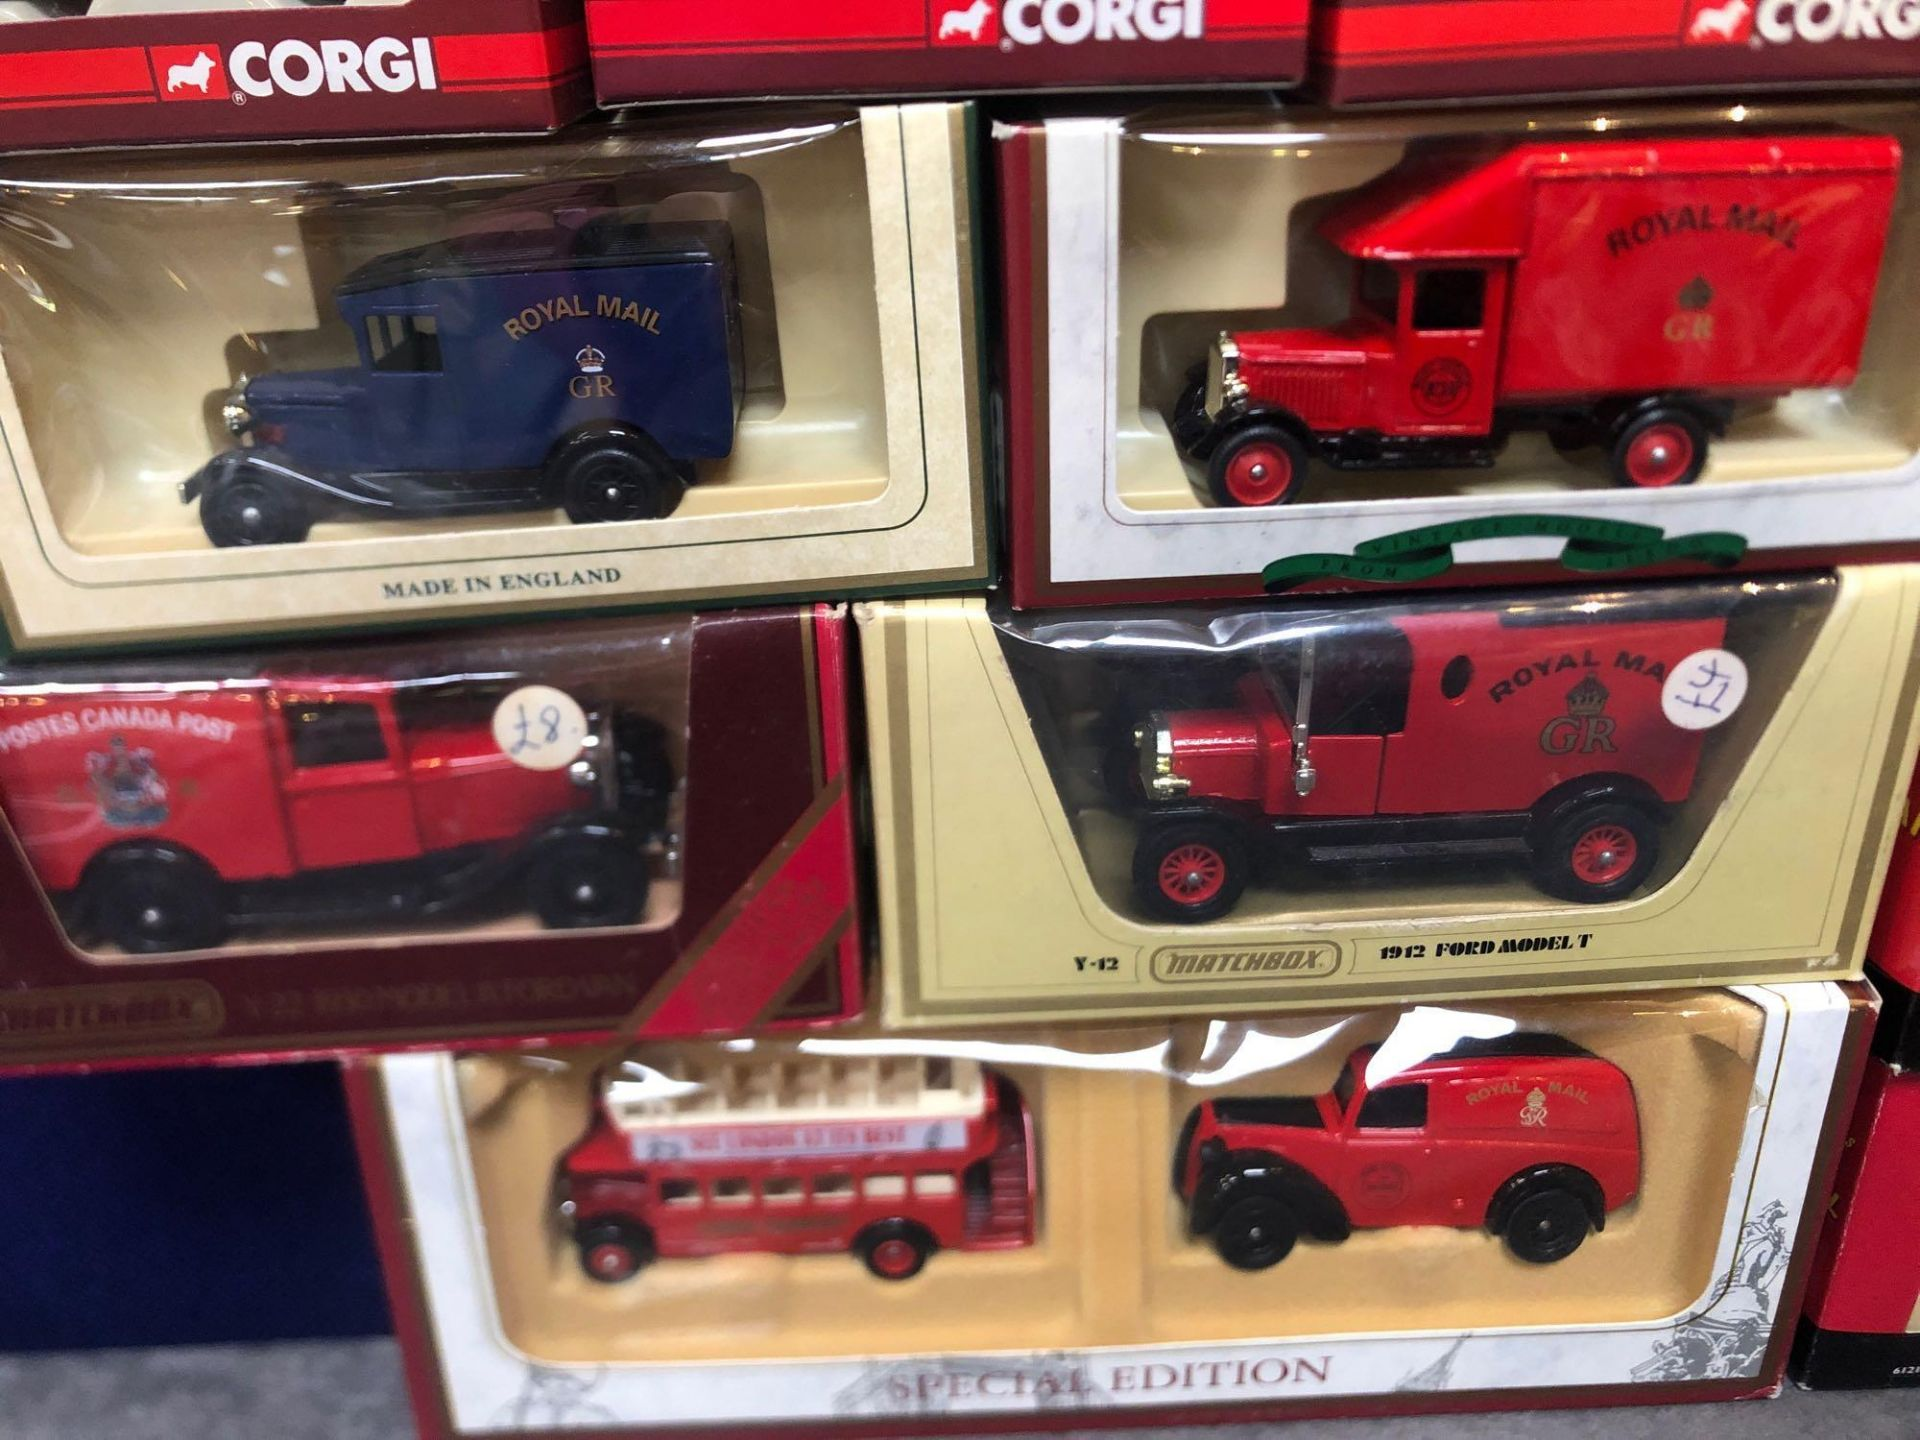 11x Diecast Individual Royal Mail Vehicles And 1x Set All In Boxes - Image 3 of 4